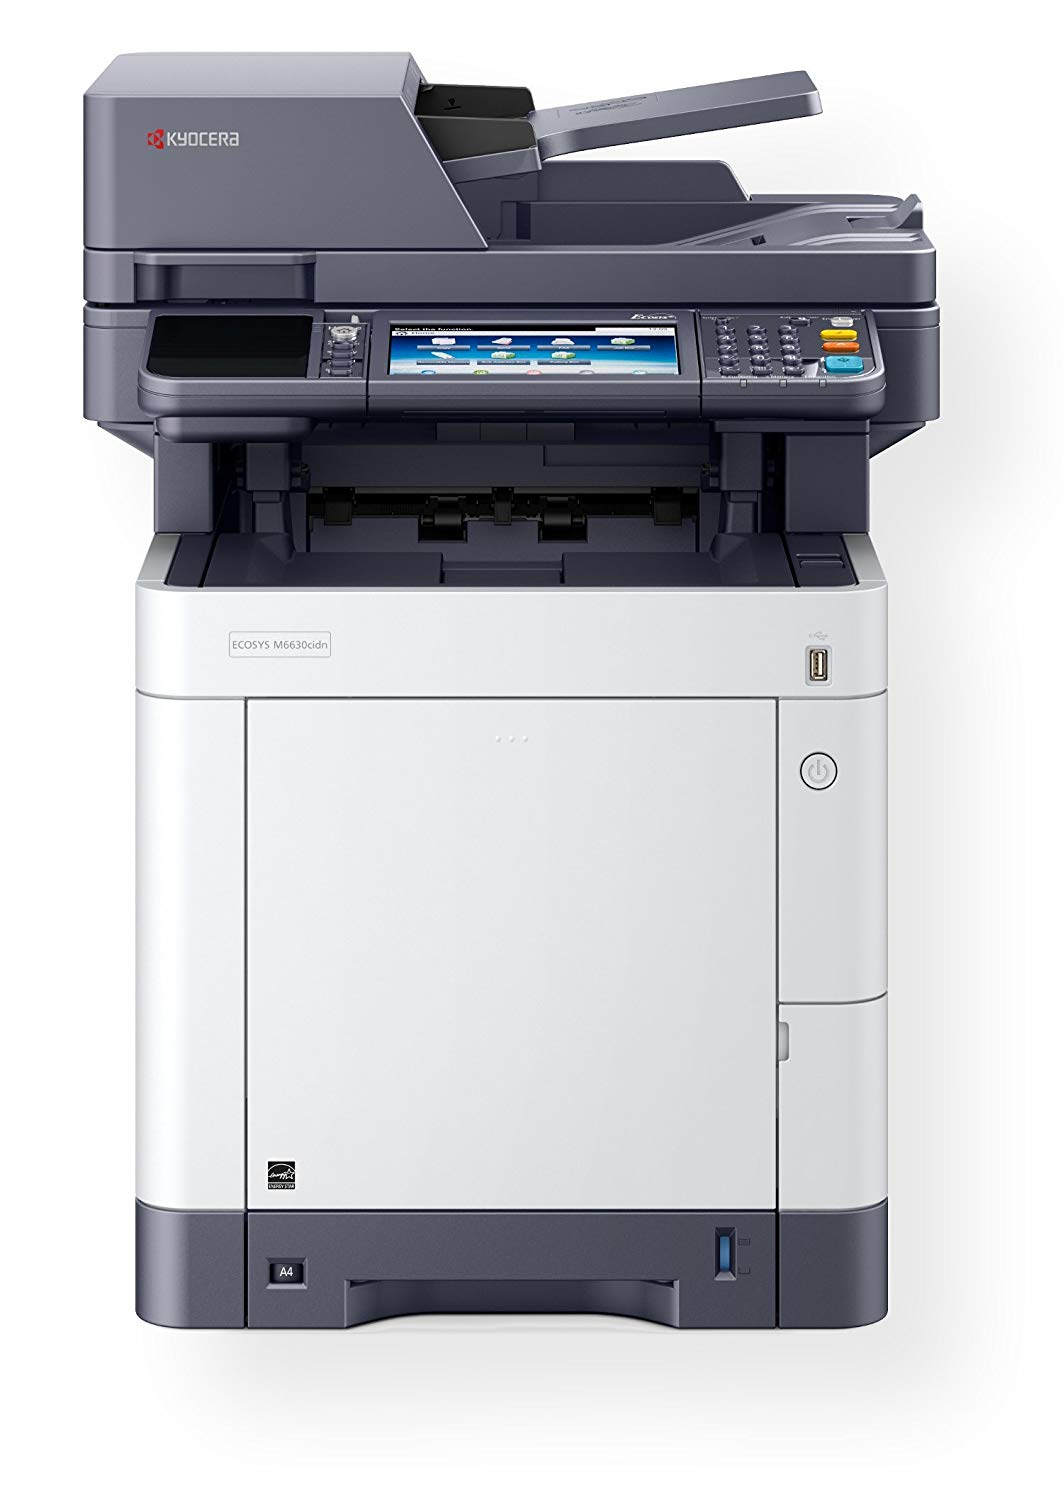 Multifunctional Machines Kyocera ECOSYS M6630cidn Colour